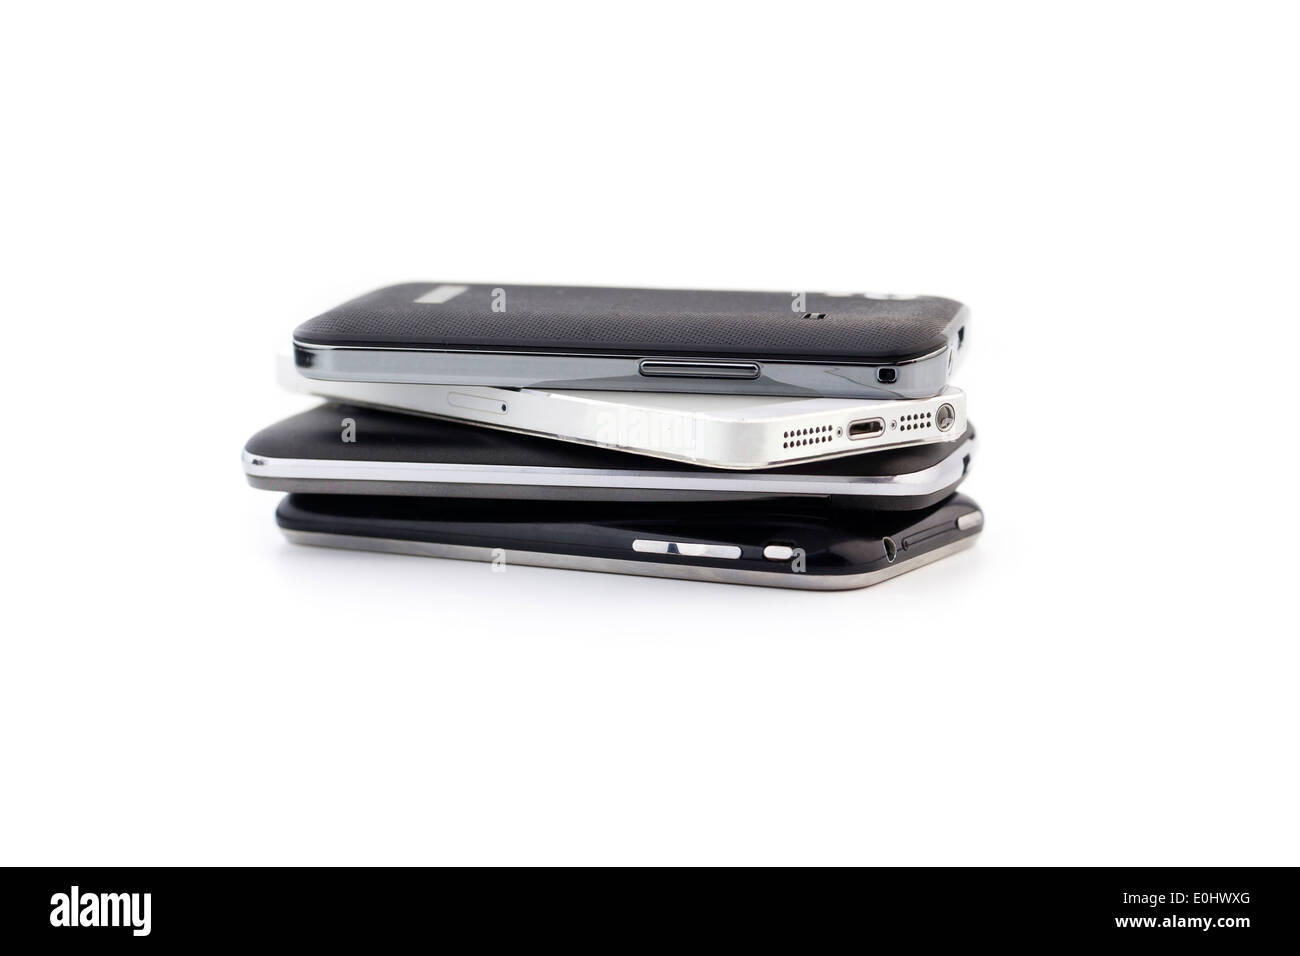 Stack of different smartphones - Stock Image